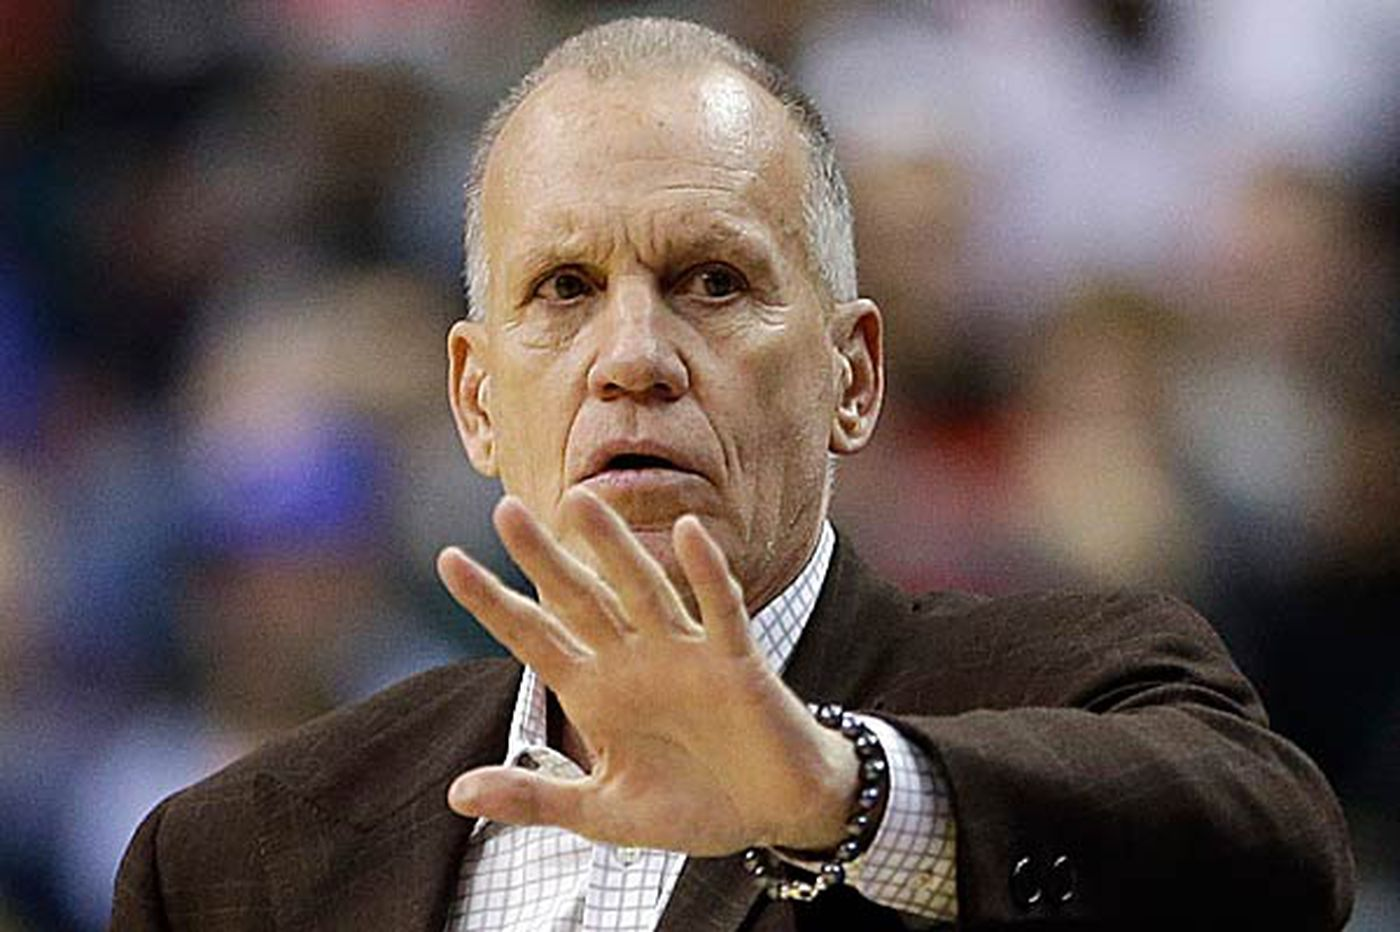 Sixers head coach Doug Collins makes time for players to get family time